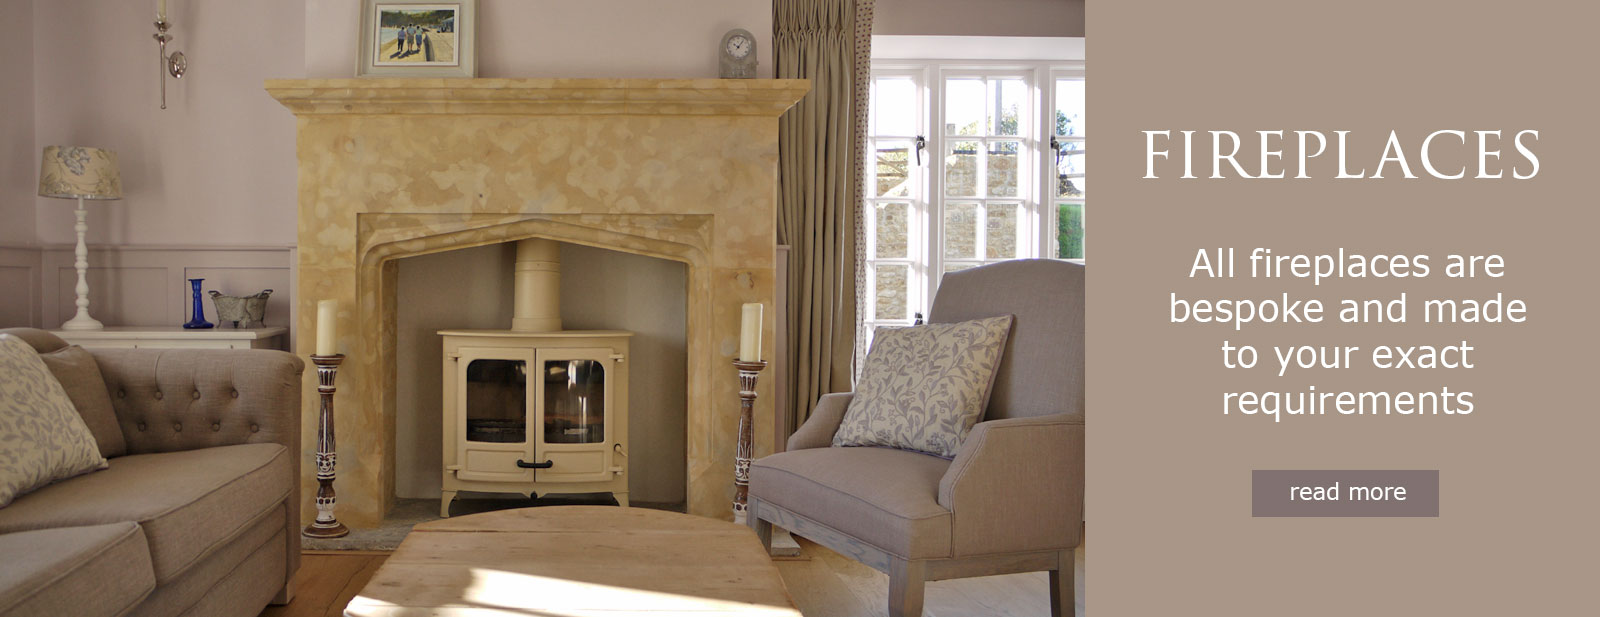 Sherborne Stone Fireplaces